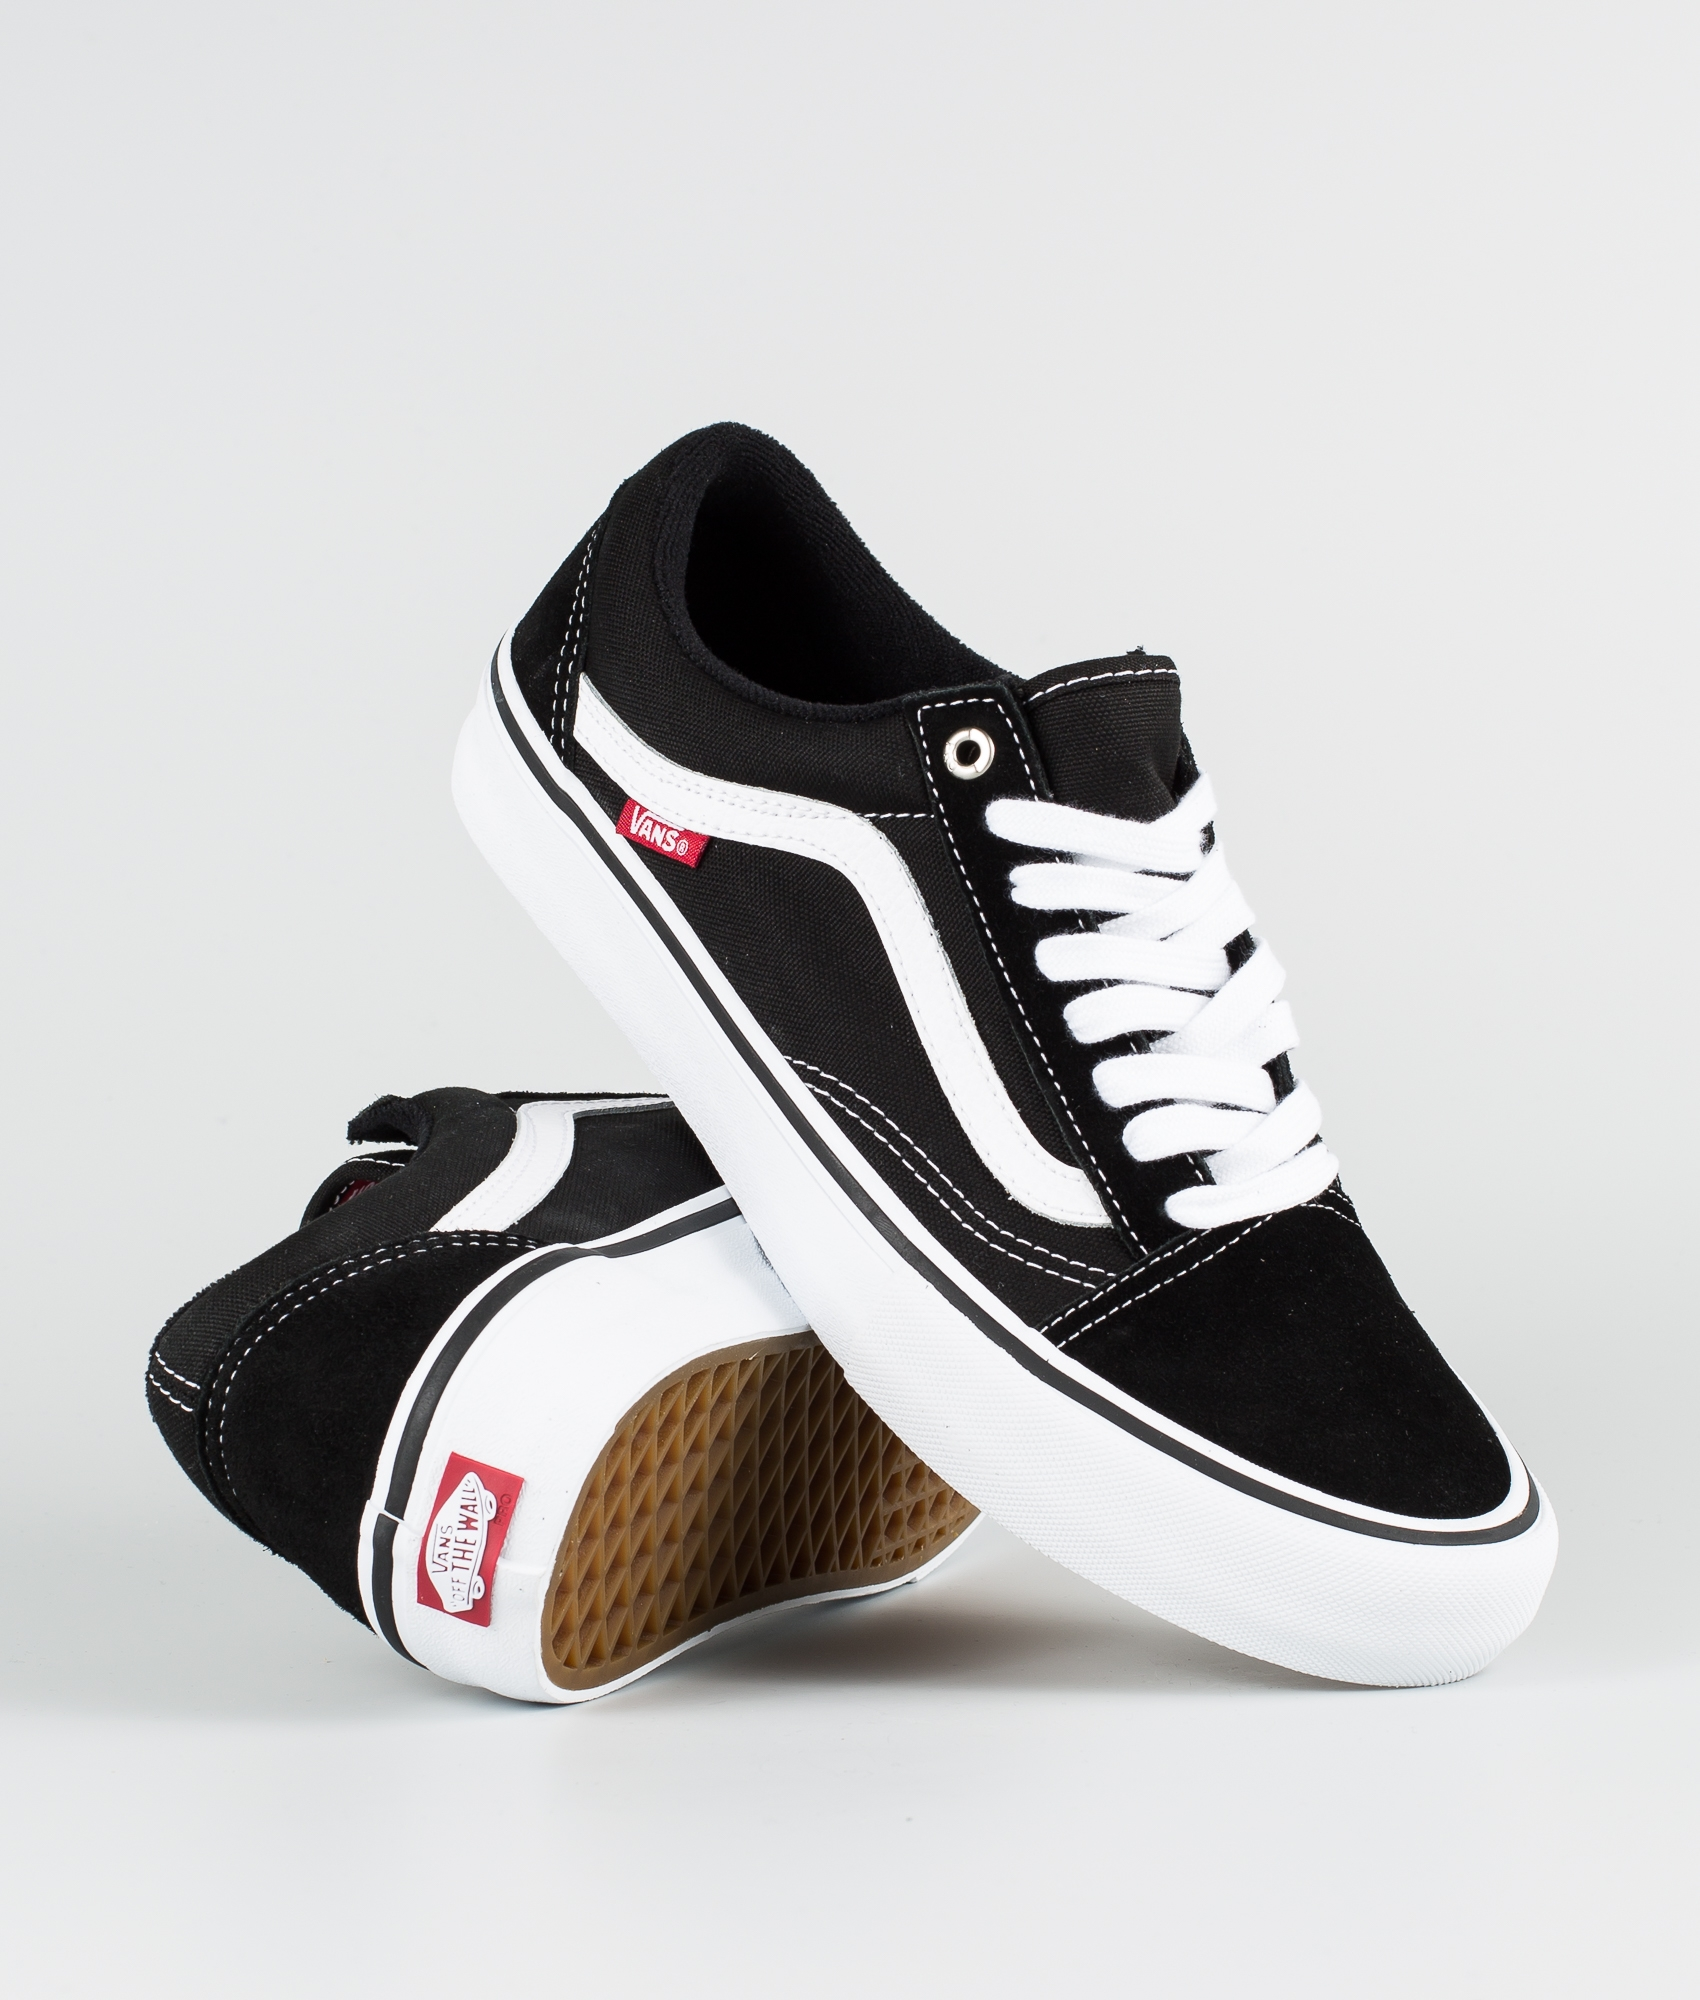 Vans Old Skool Pro Schuhe Black/White